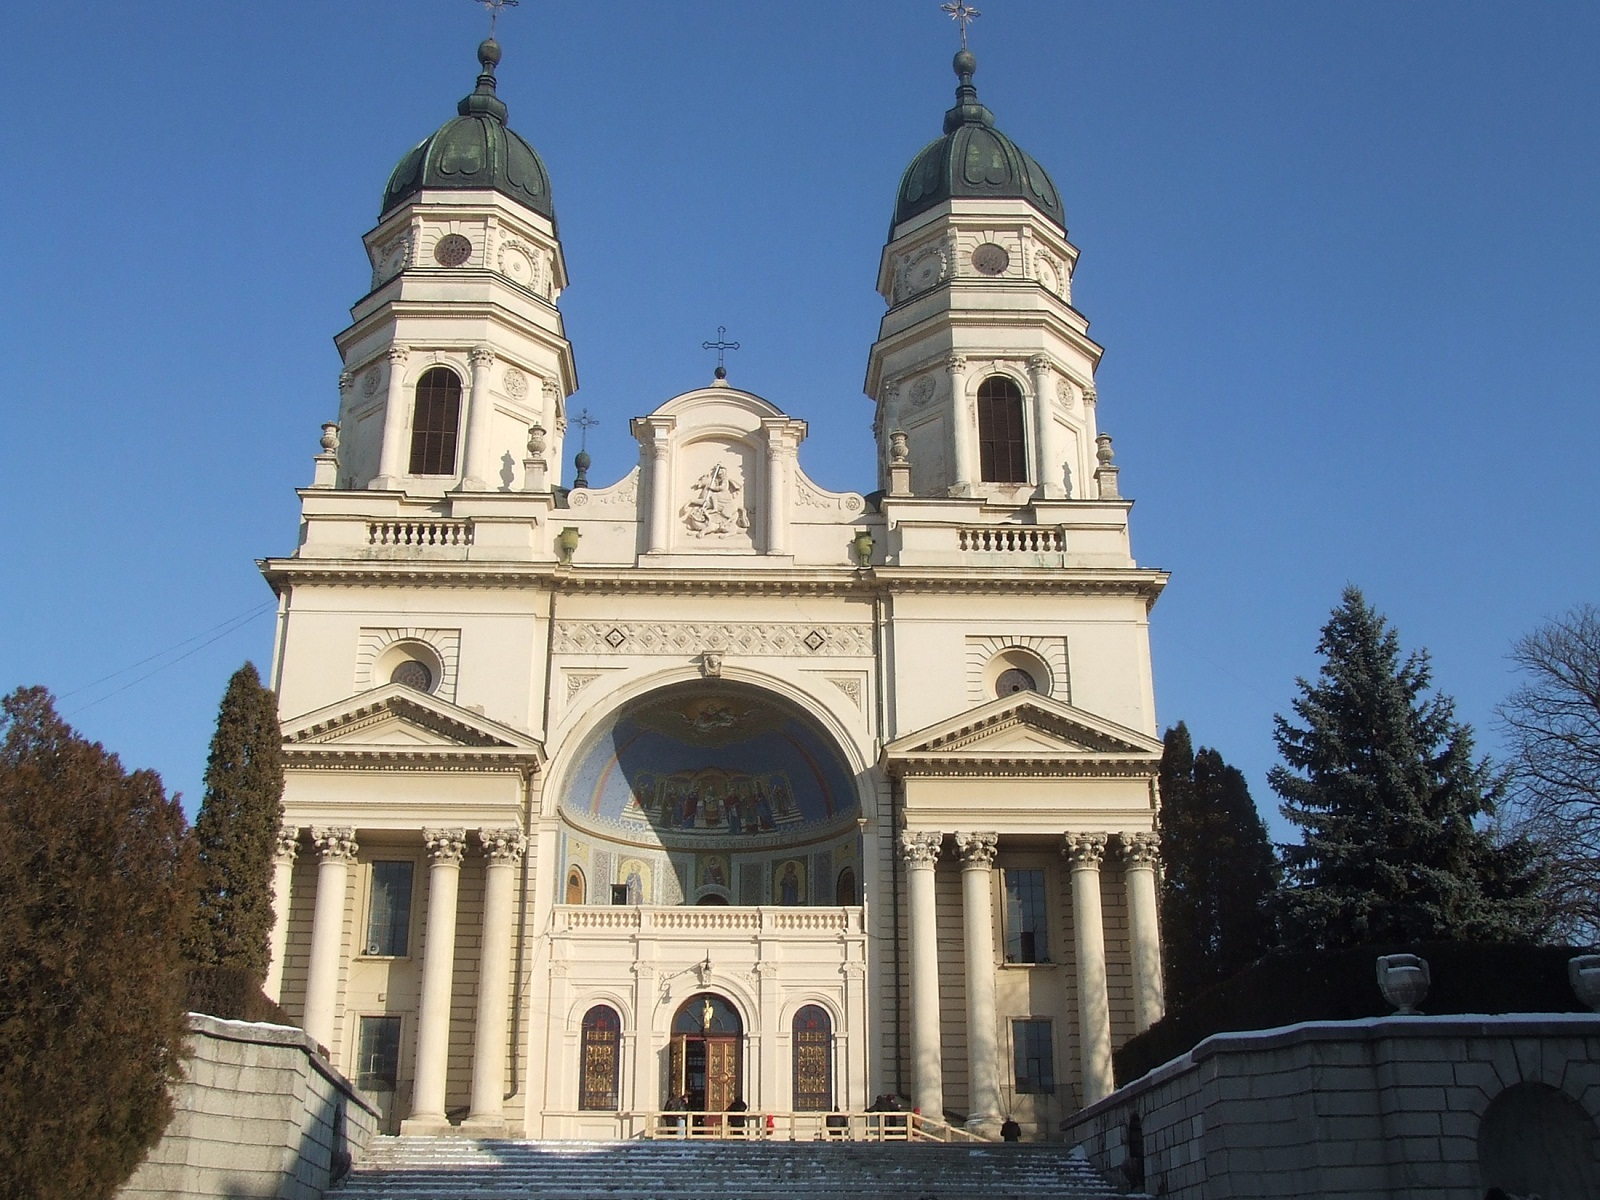 Iasi architecture, Romania, Orthodox Metropolitan Cathedral, front view